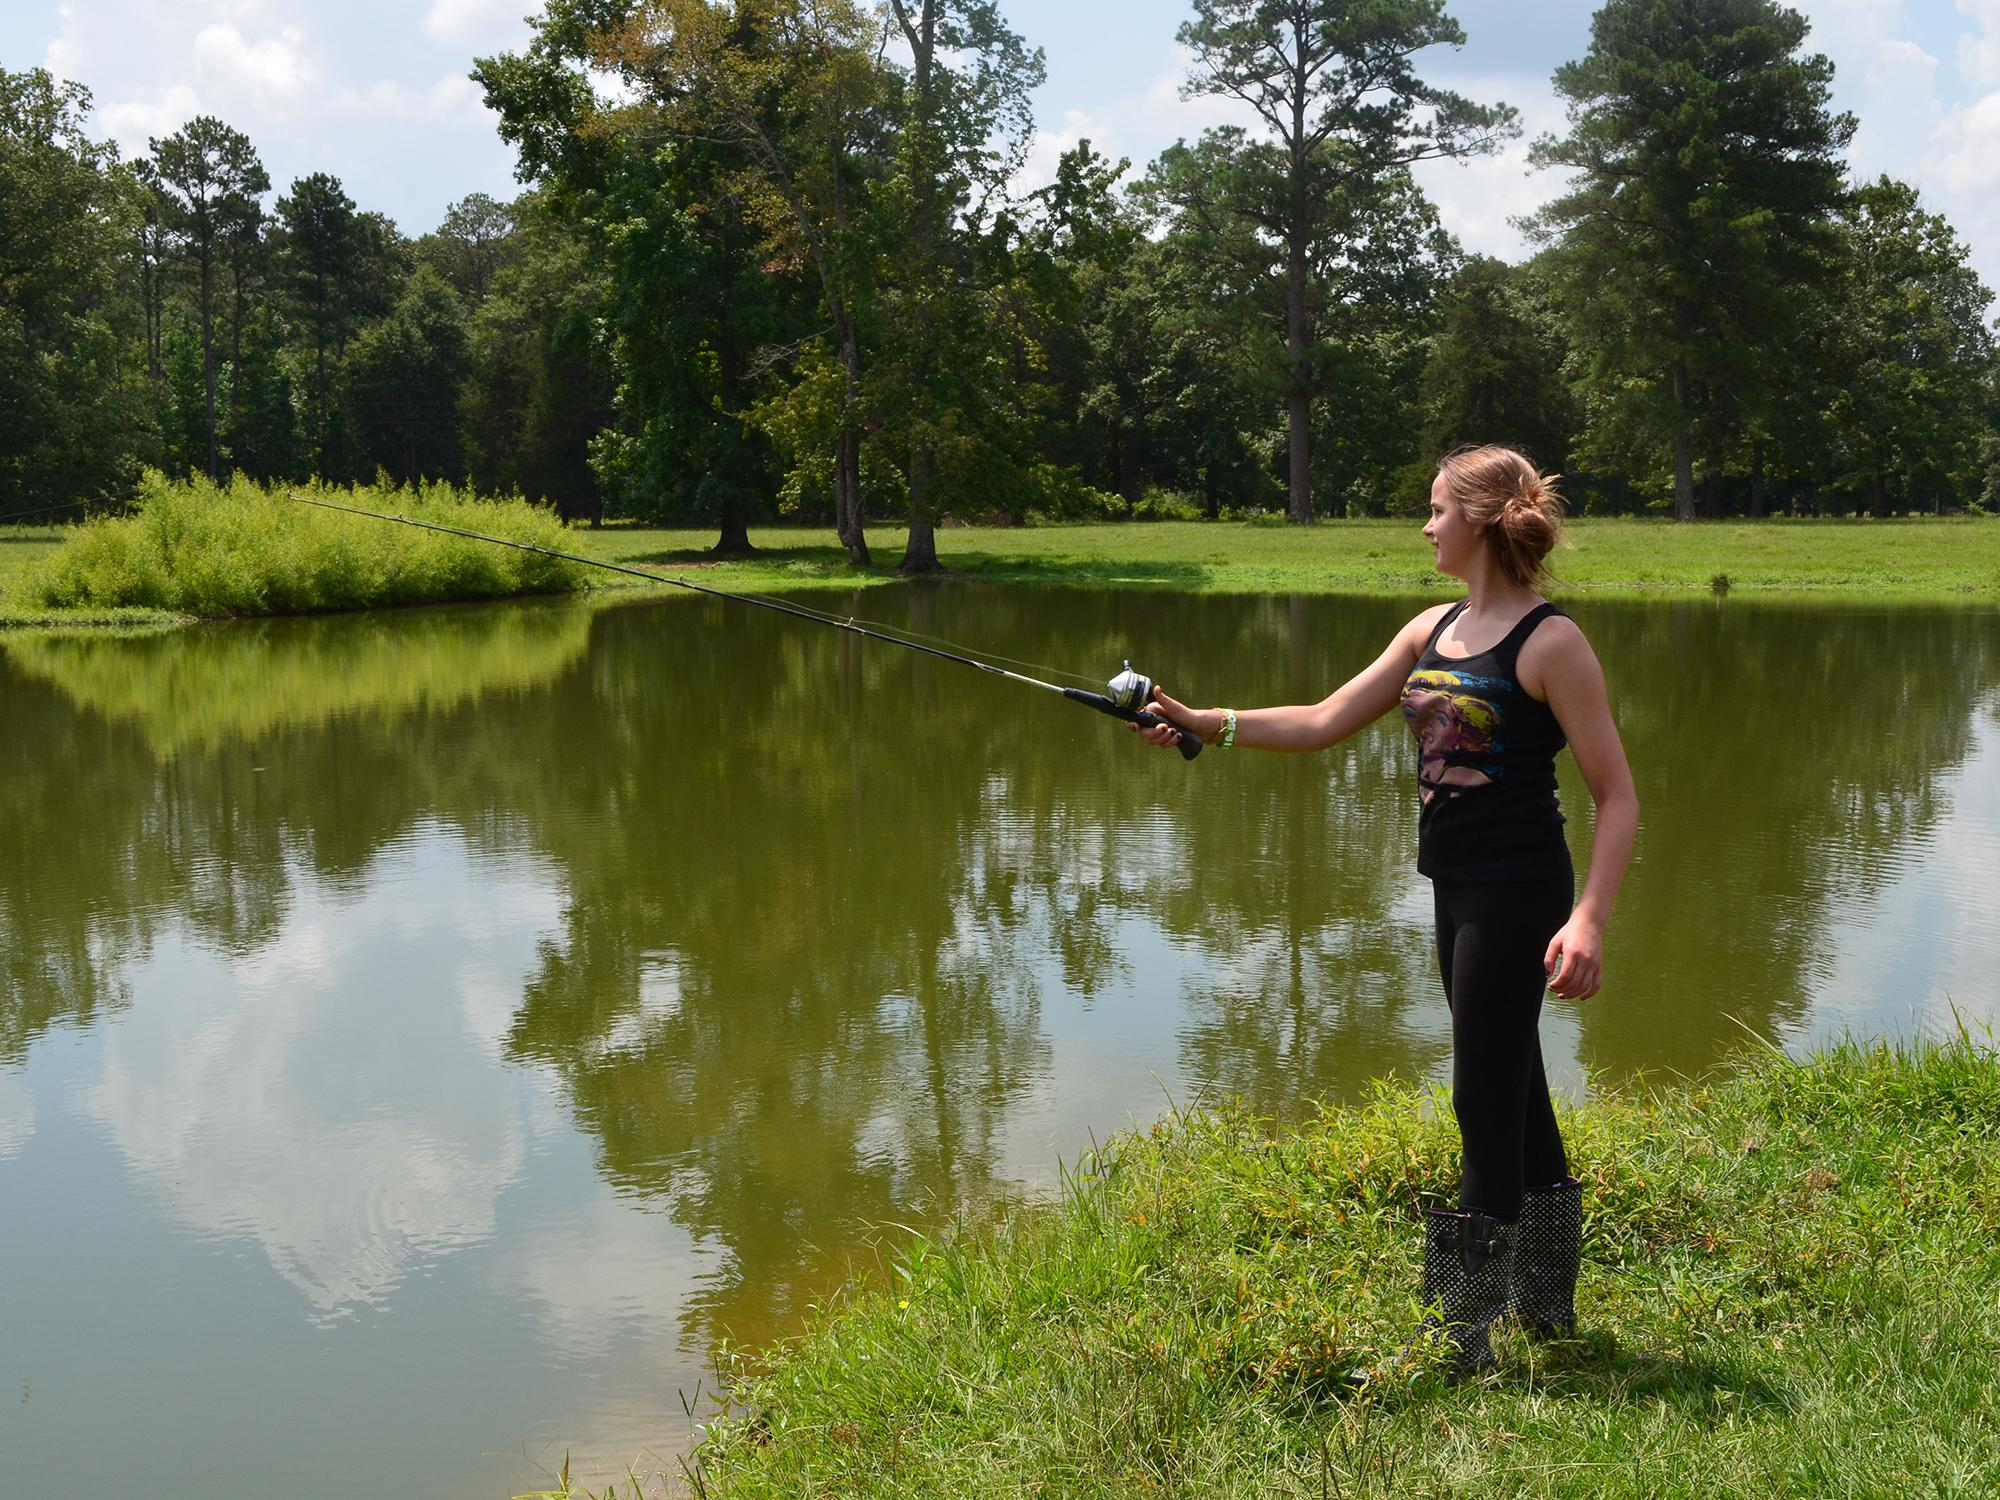 This young angler is actually helping an Oktibbeha County pond grow larger fish. Pond and lake managers need to harvest 1 pound of bass to 5 pounds of bream, usually beginning in the third year after stocking, to promote larger fish. (MSU Extension Service file photo/Linda Breazeale)